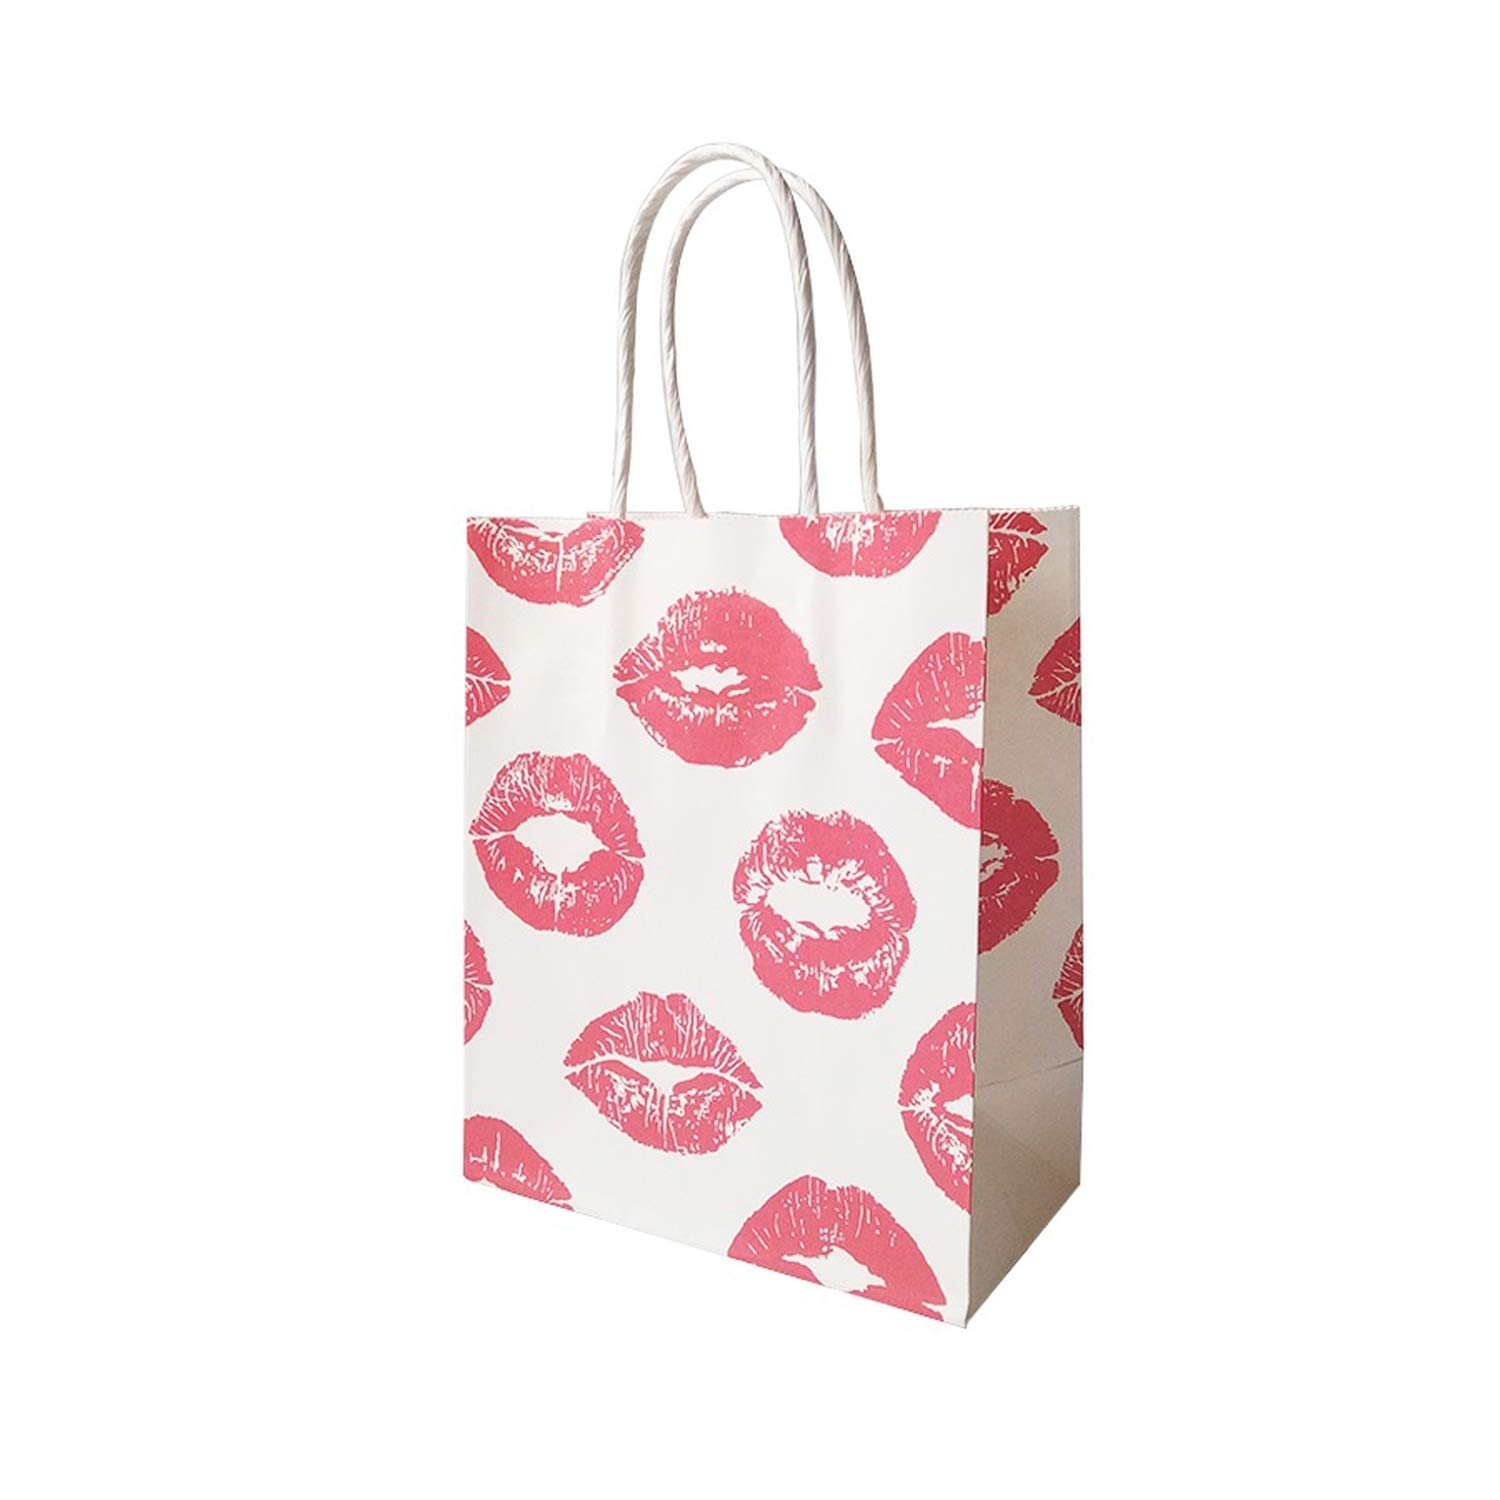 50 Pcs/lot 15x18cm Cosmetic Pattern Printing Paper Bags with Handle Gift Bags Party Favor Wedding Packaging Storage Bags,Lips